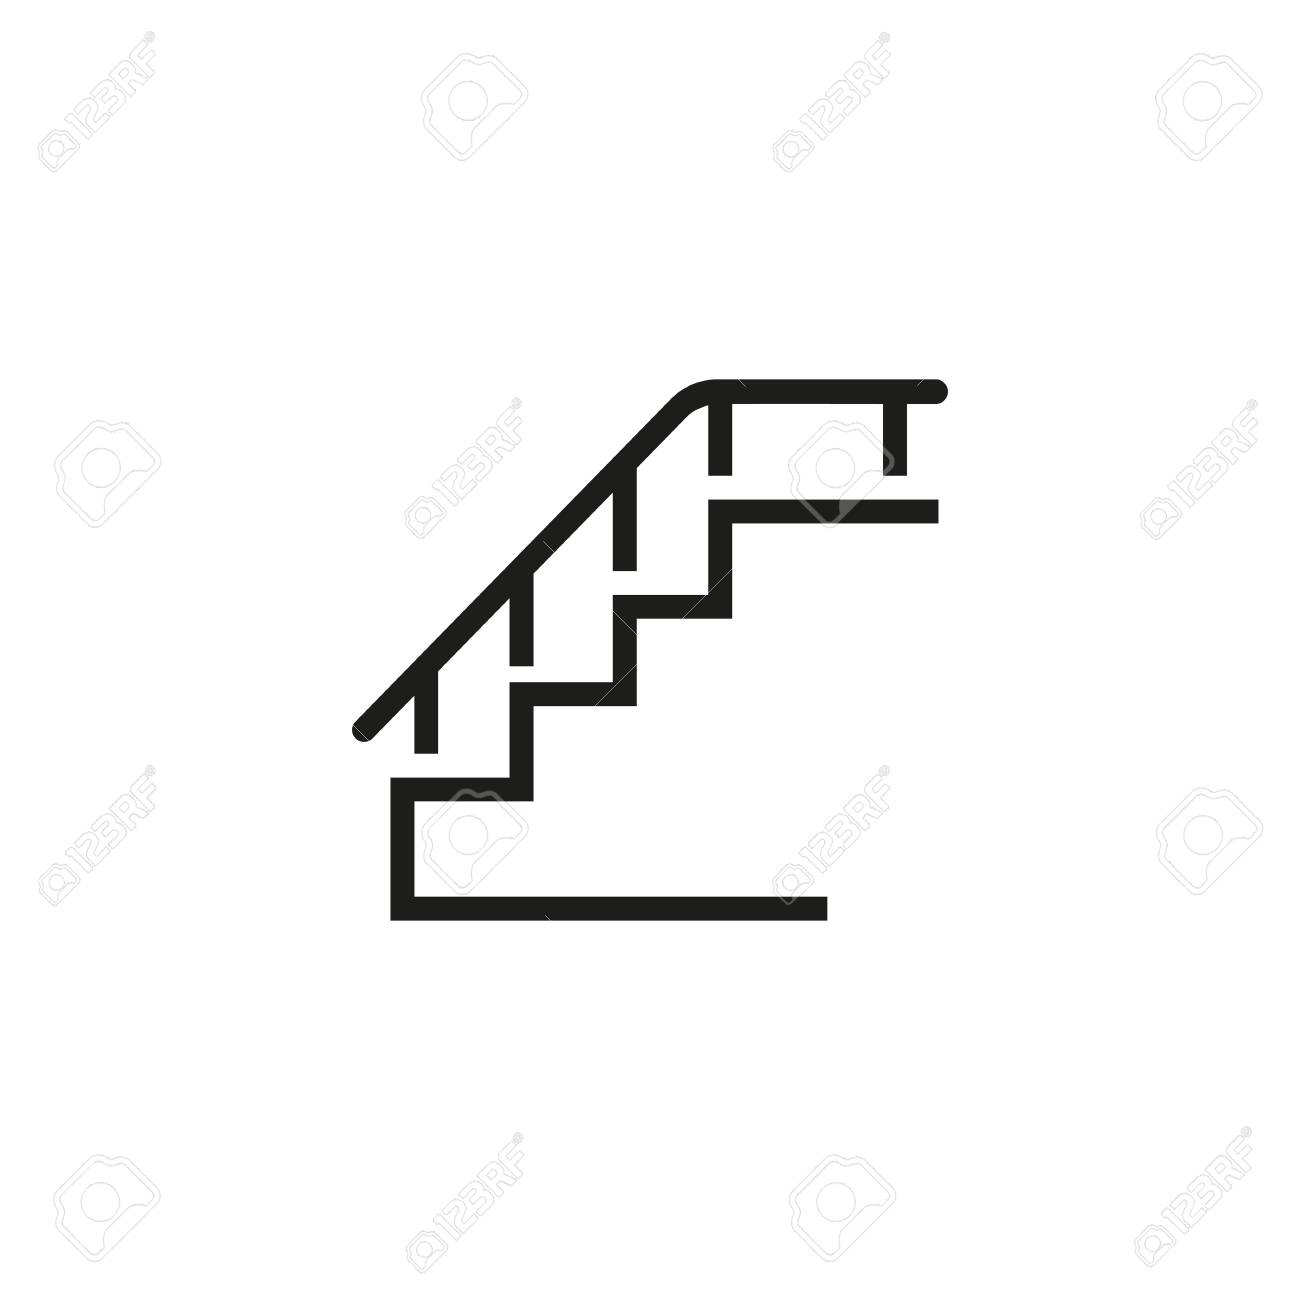 hight resolution of step staircase stairway walking concept can